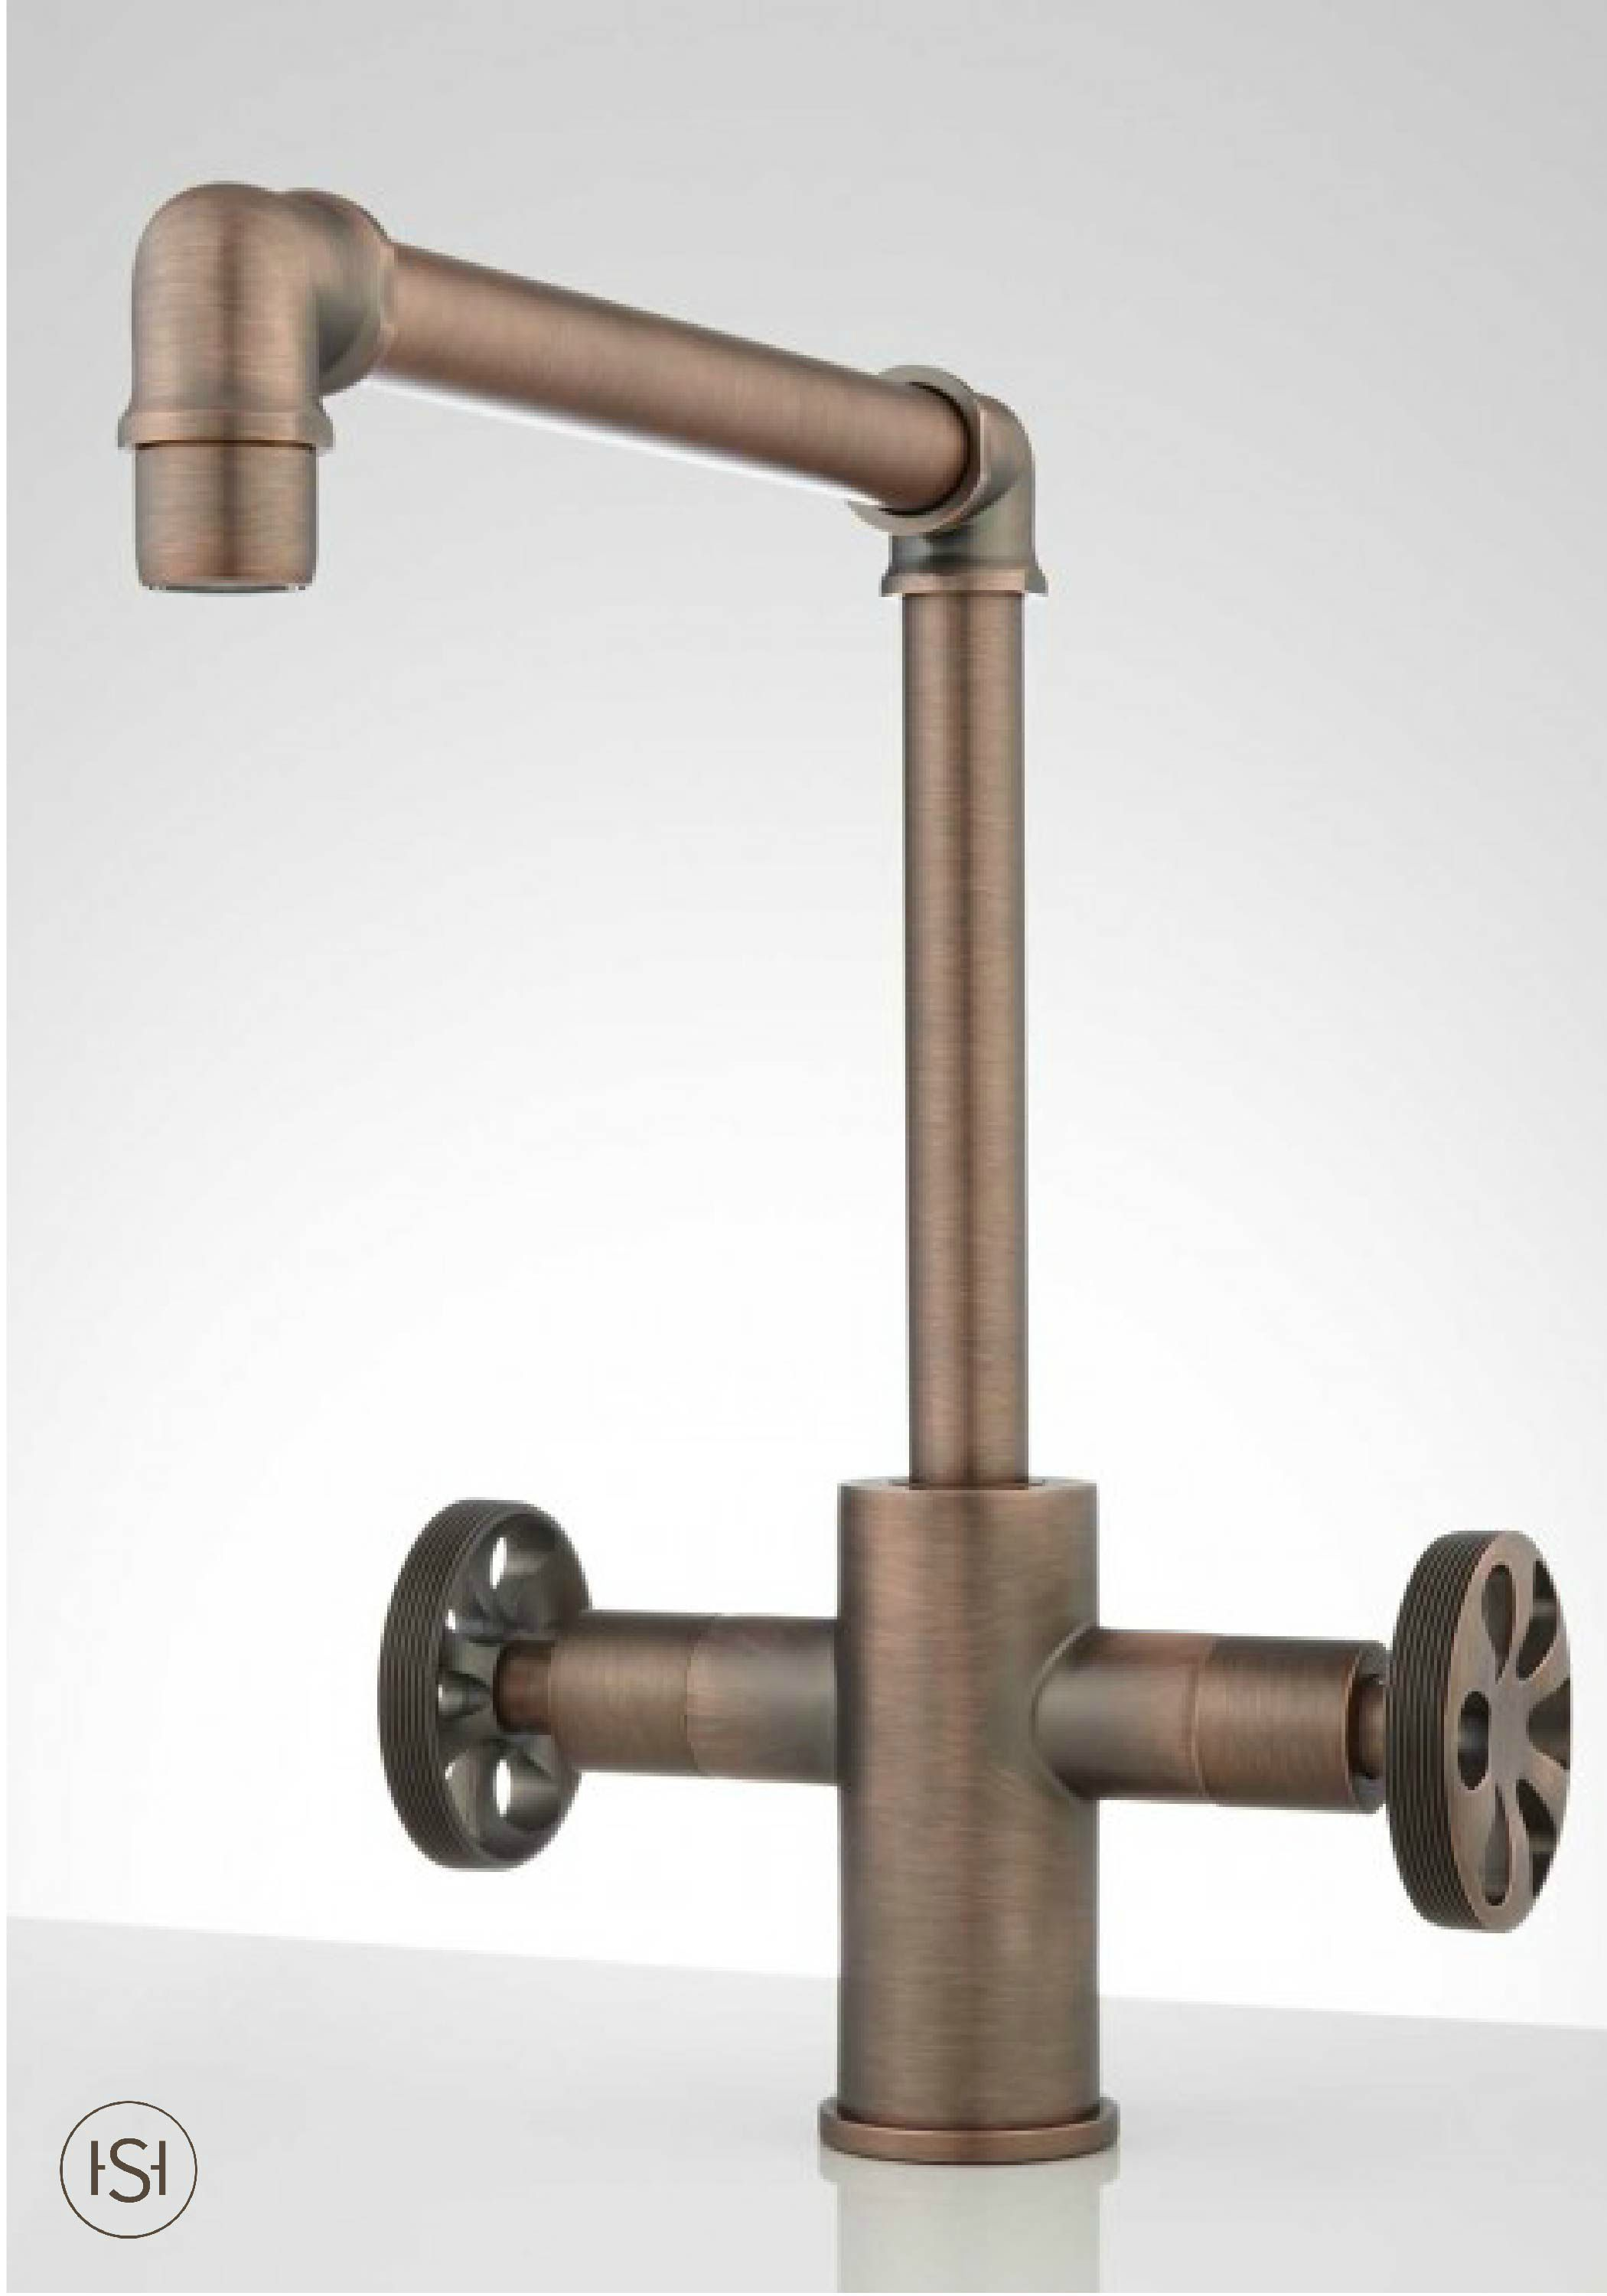 Update Your Urban Style Kitchen With This Distinct Steampunk Faucet The Design Is Inspired By Industrial Ste